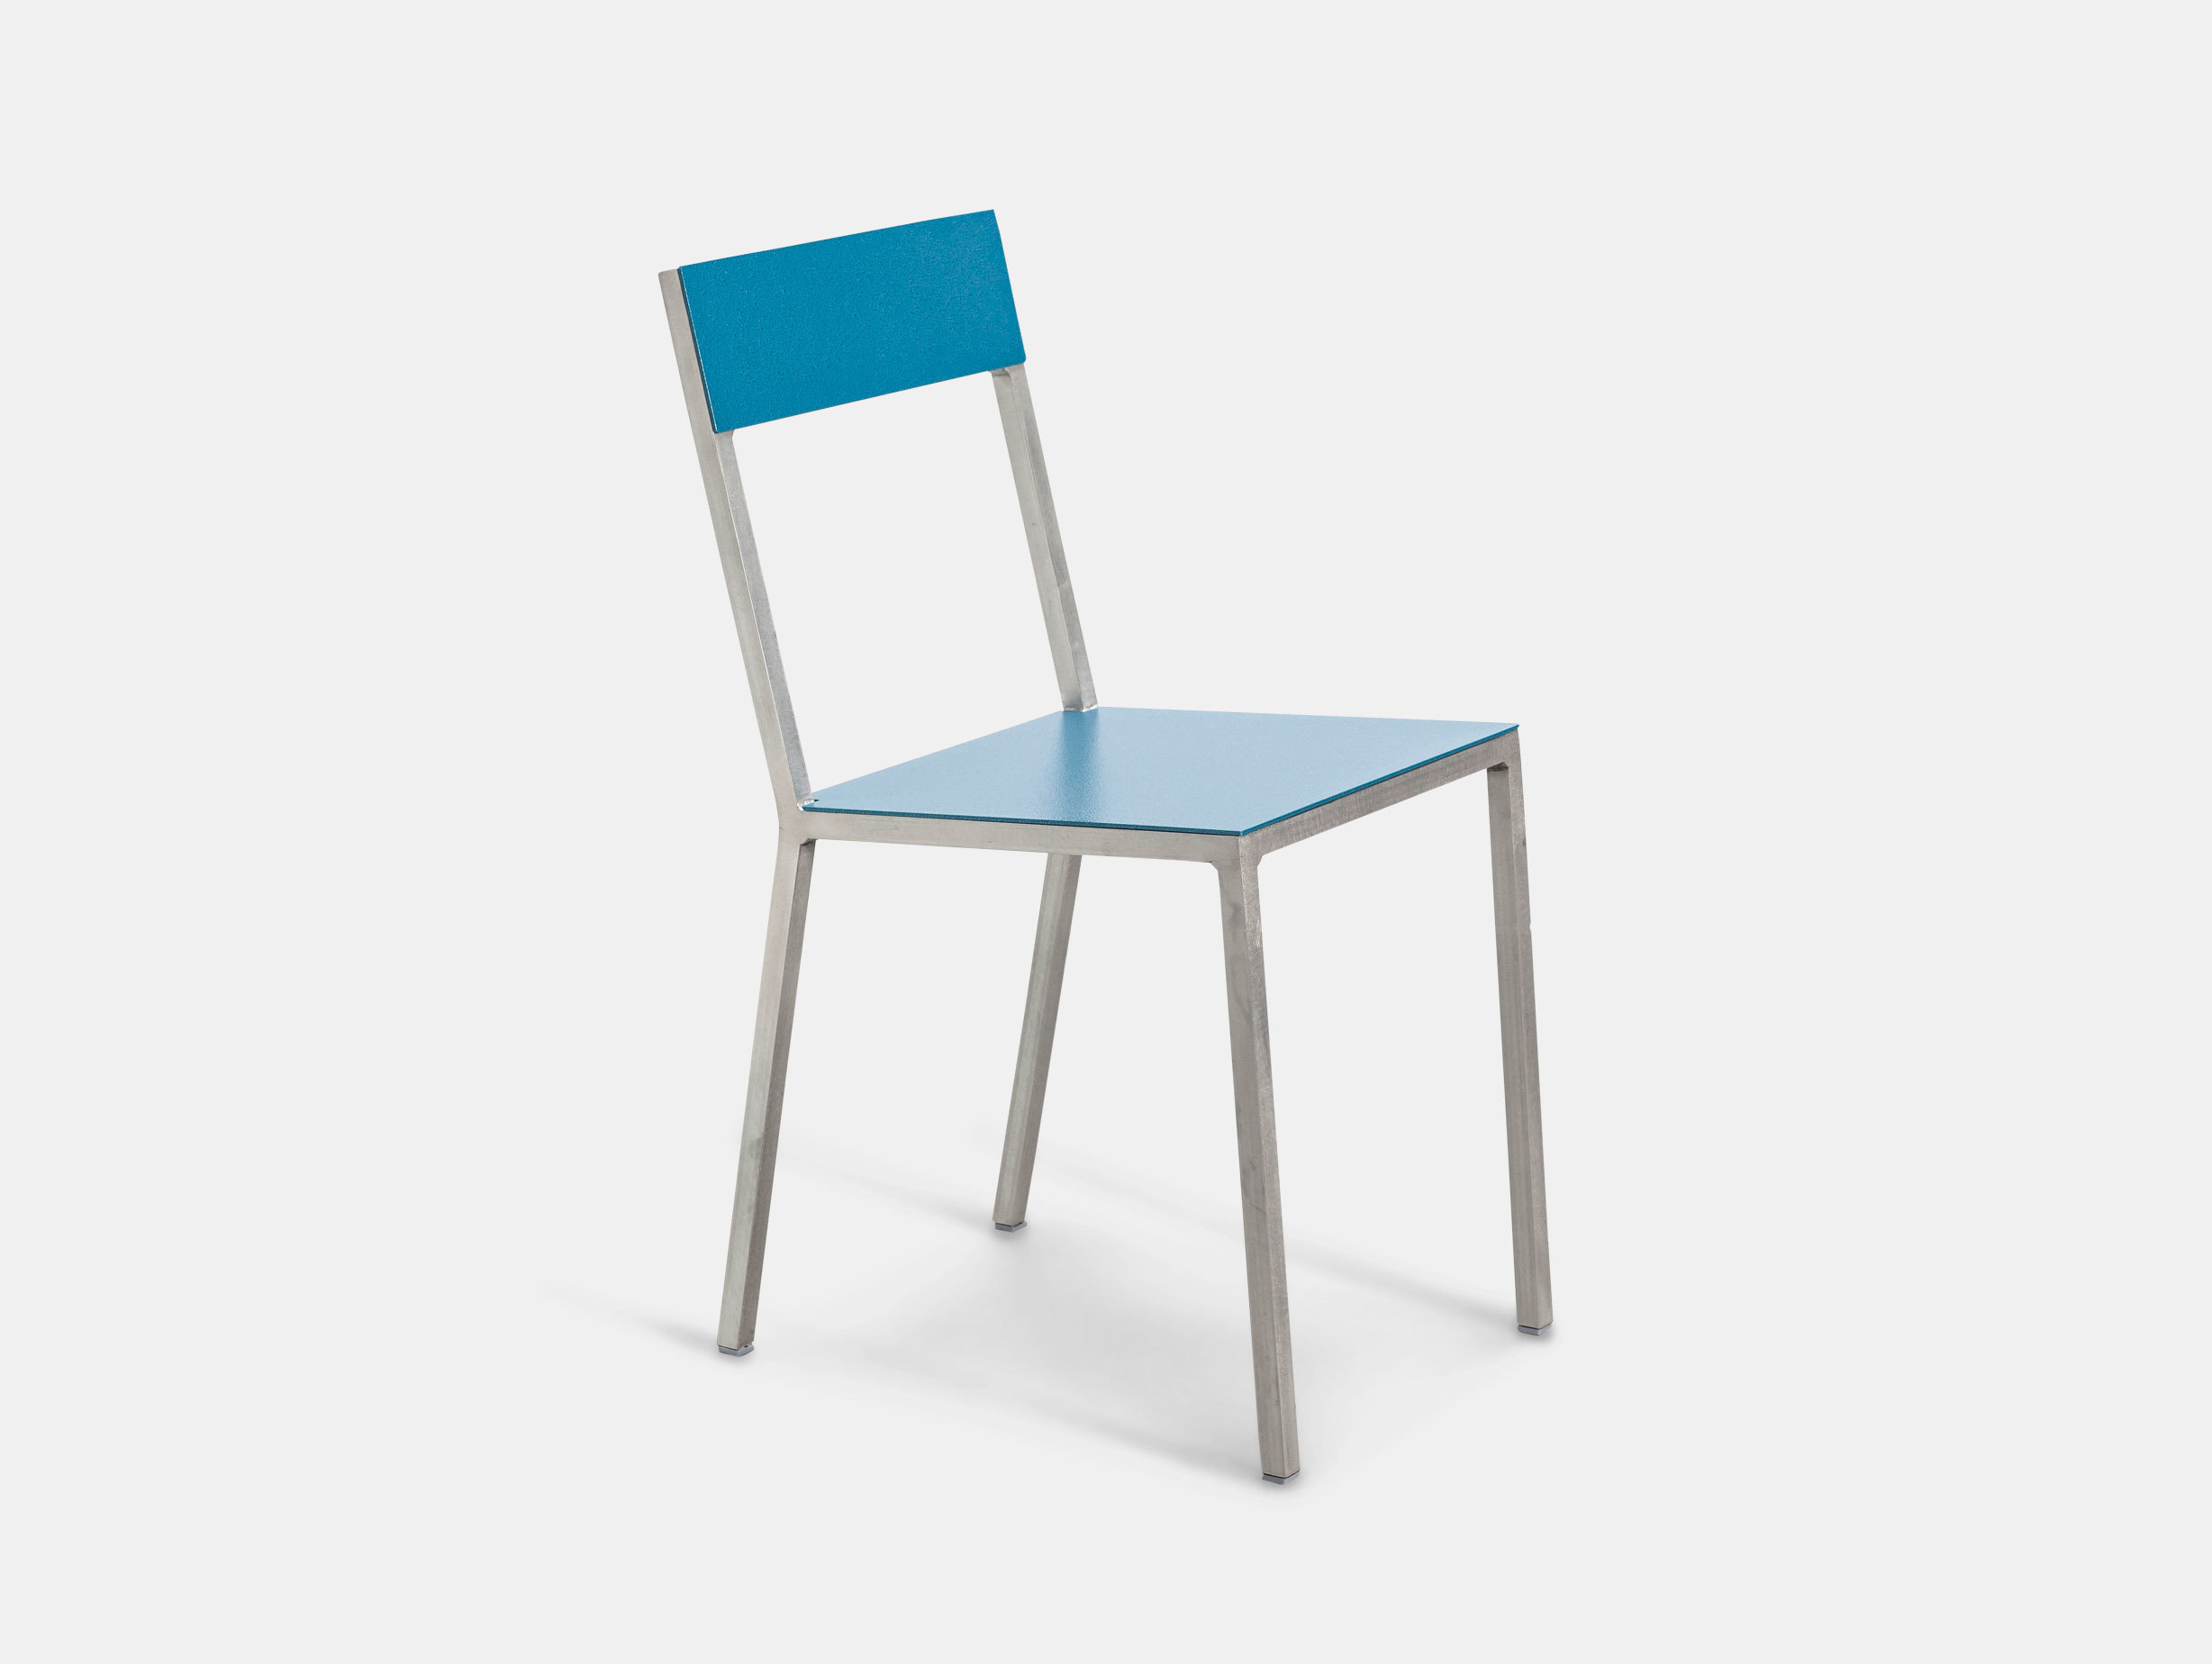 Alu Chair image 10